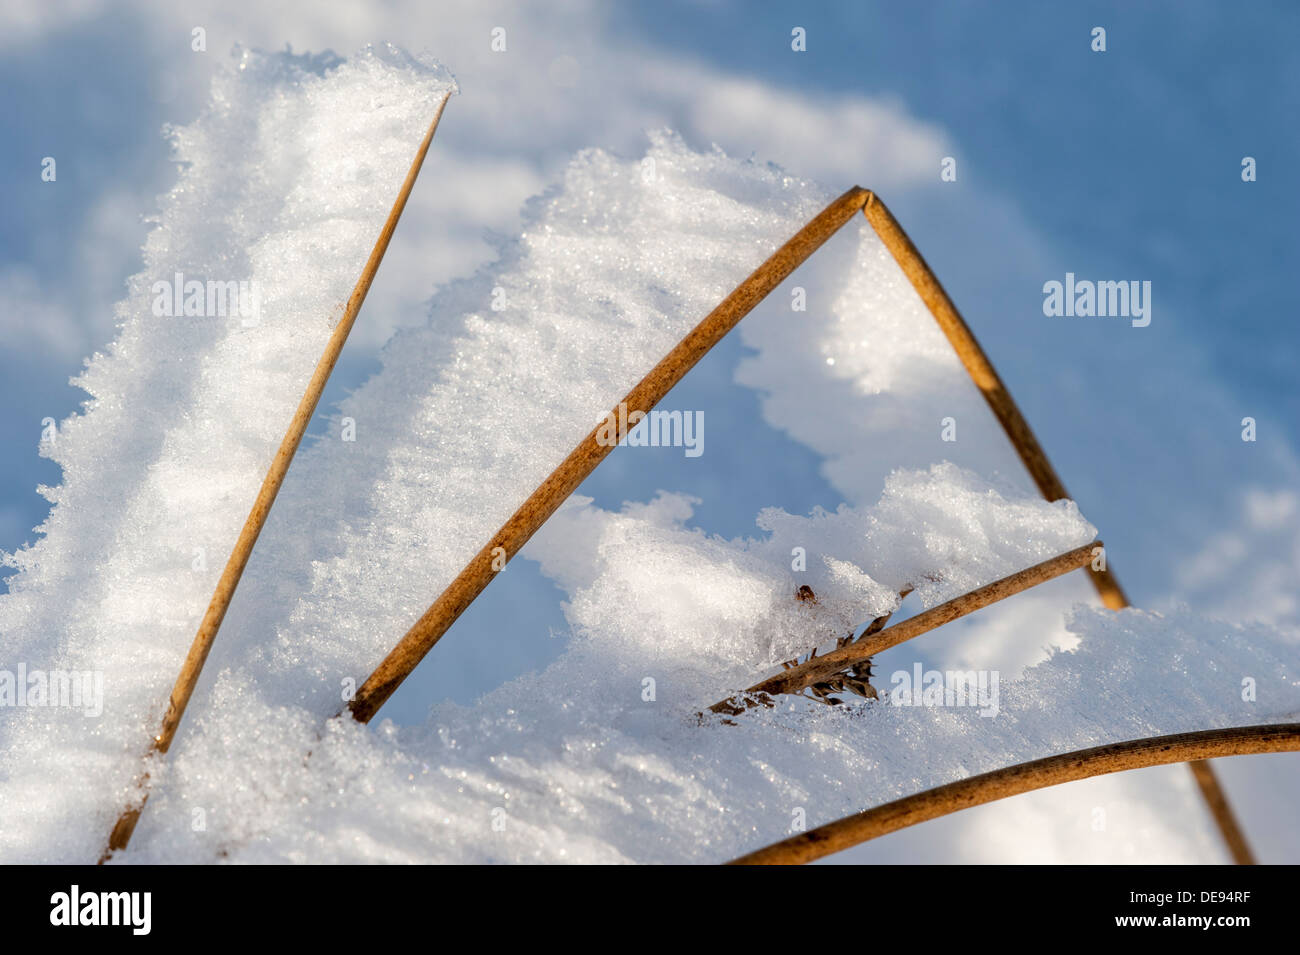 White hoar frost / hoarfrost forming on grass stems pointing in same direction due to the wind in winter - Stock Image